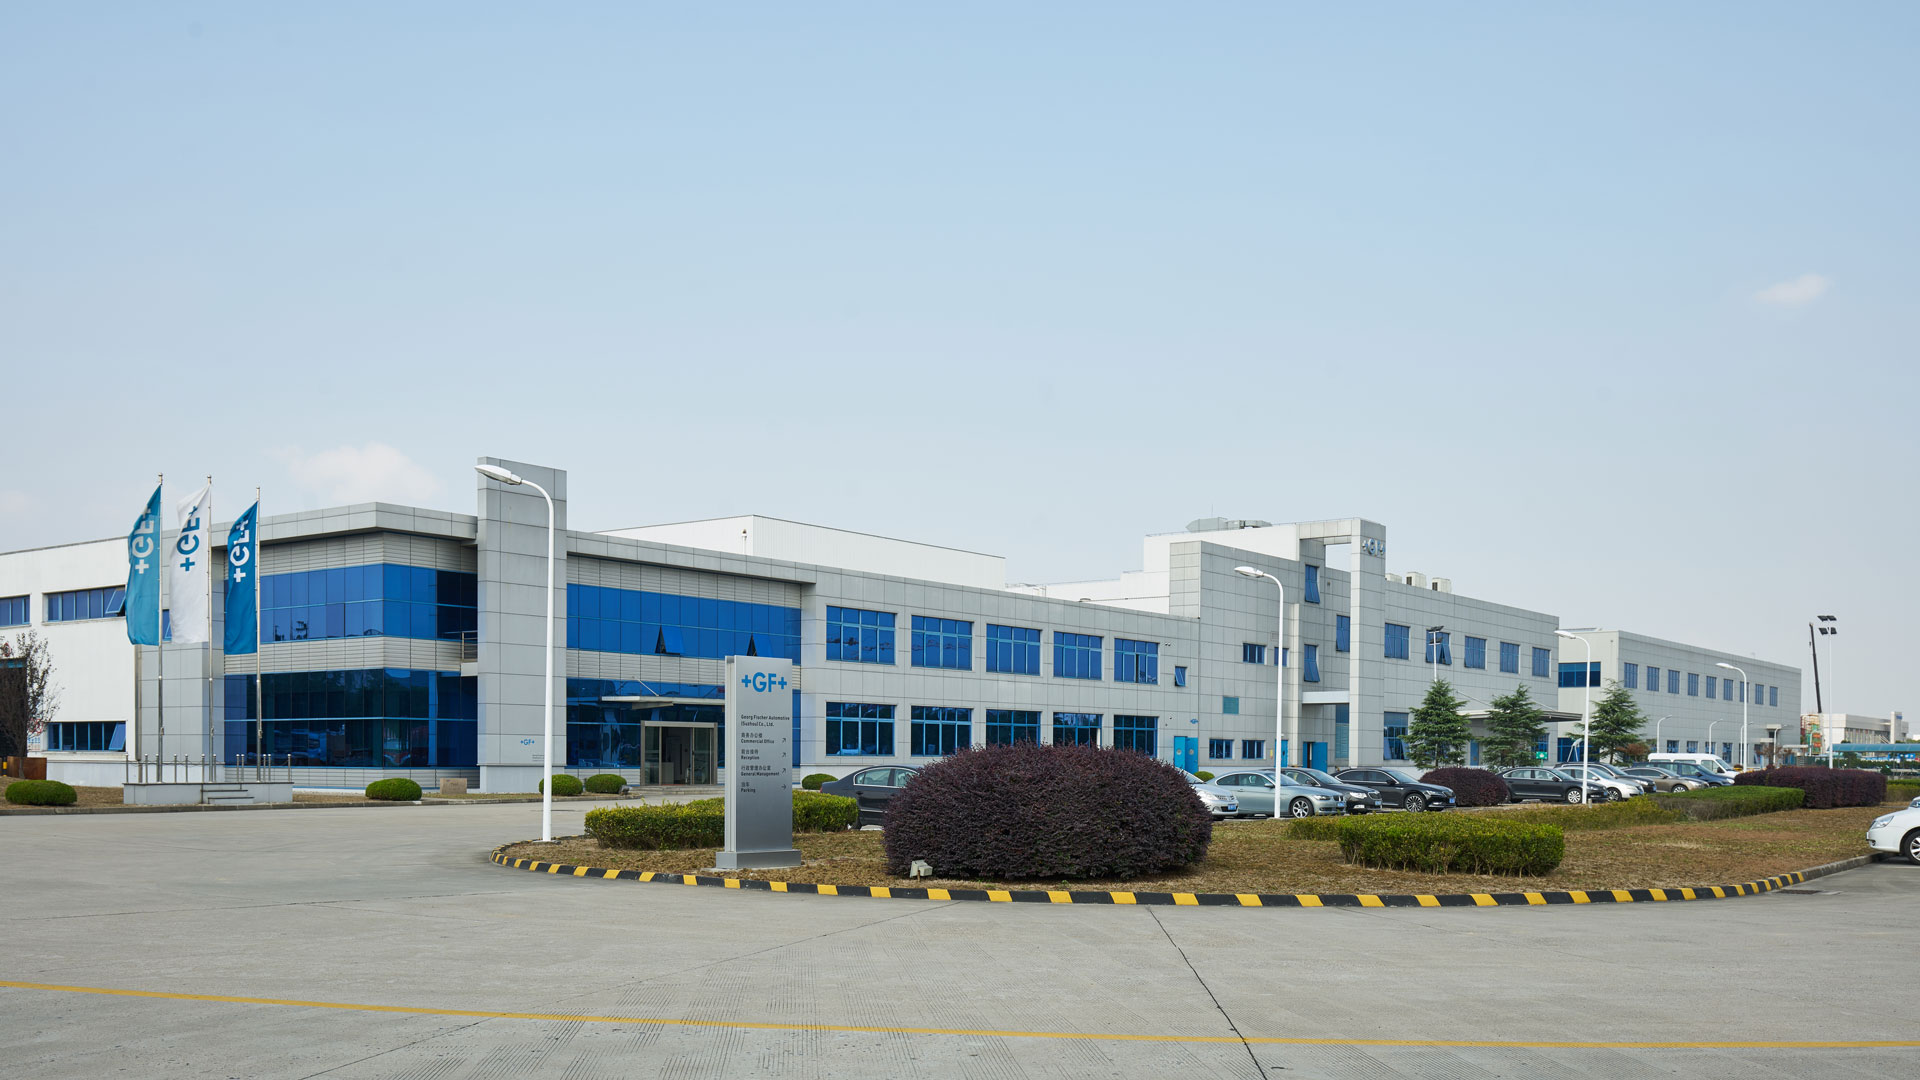 The newly ordered lightweight parts will be produced at the Suzhou plant of GF Casting Solutions.